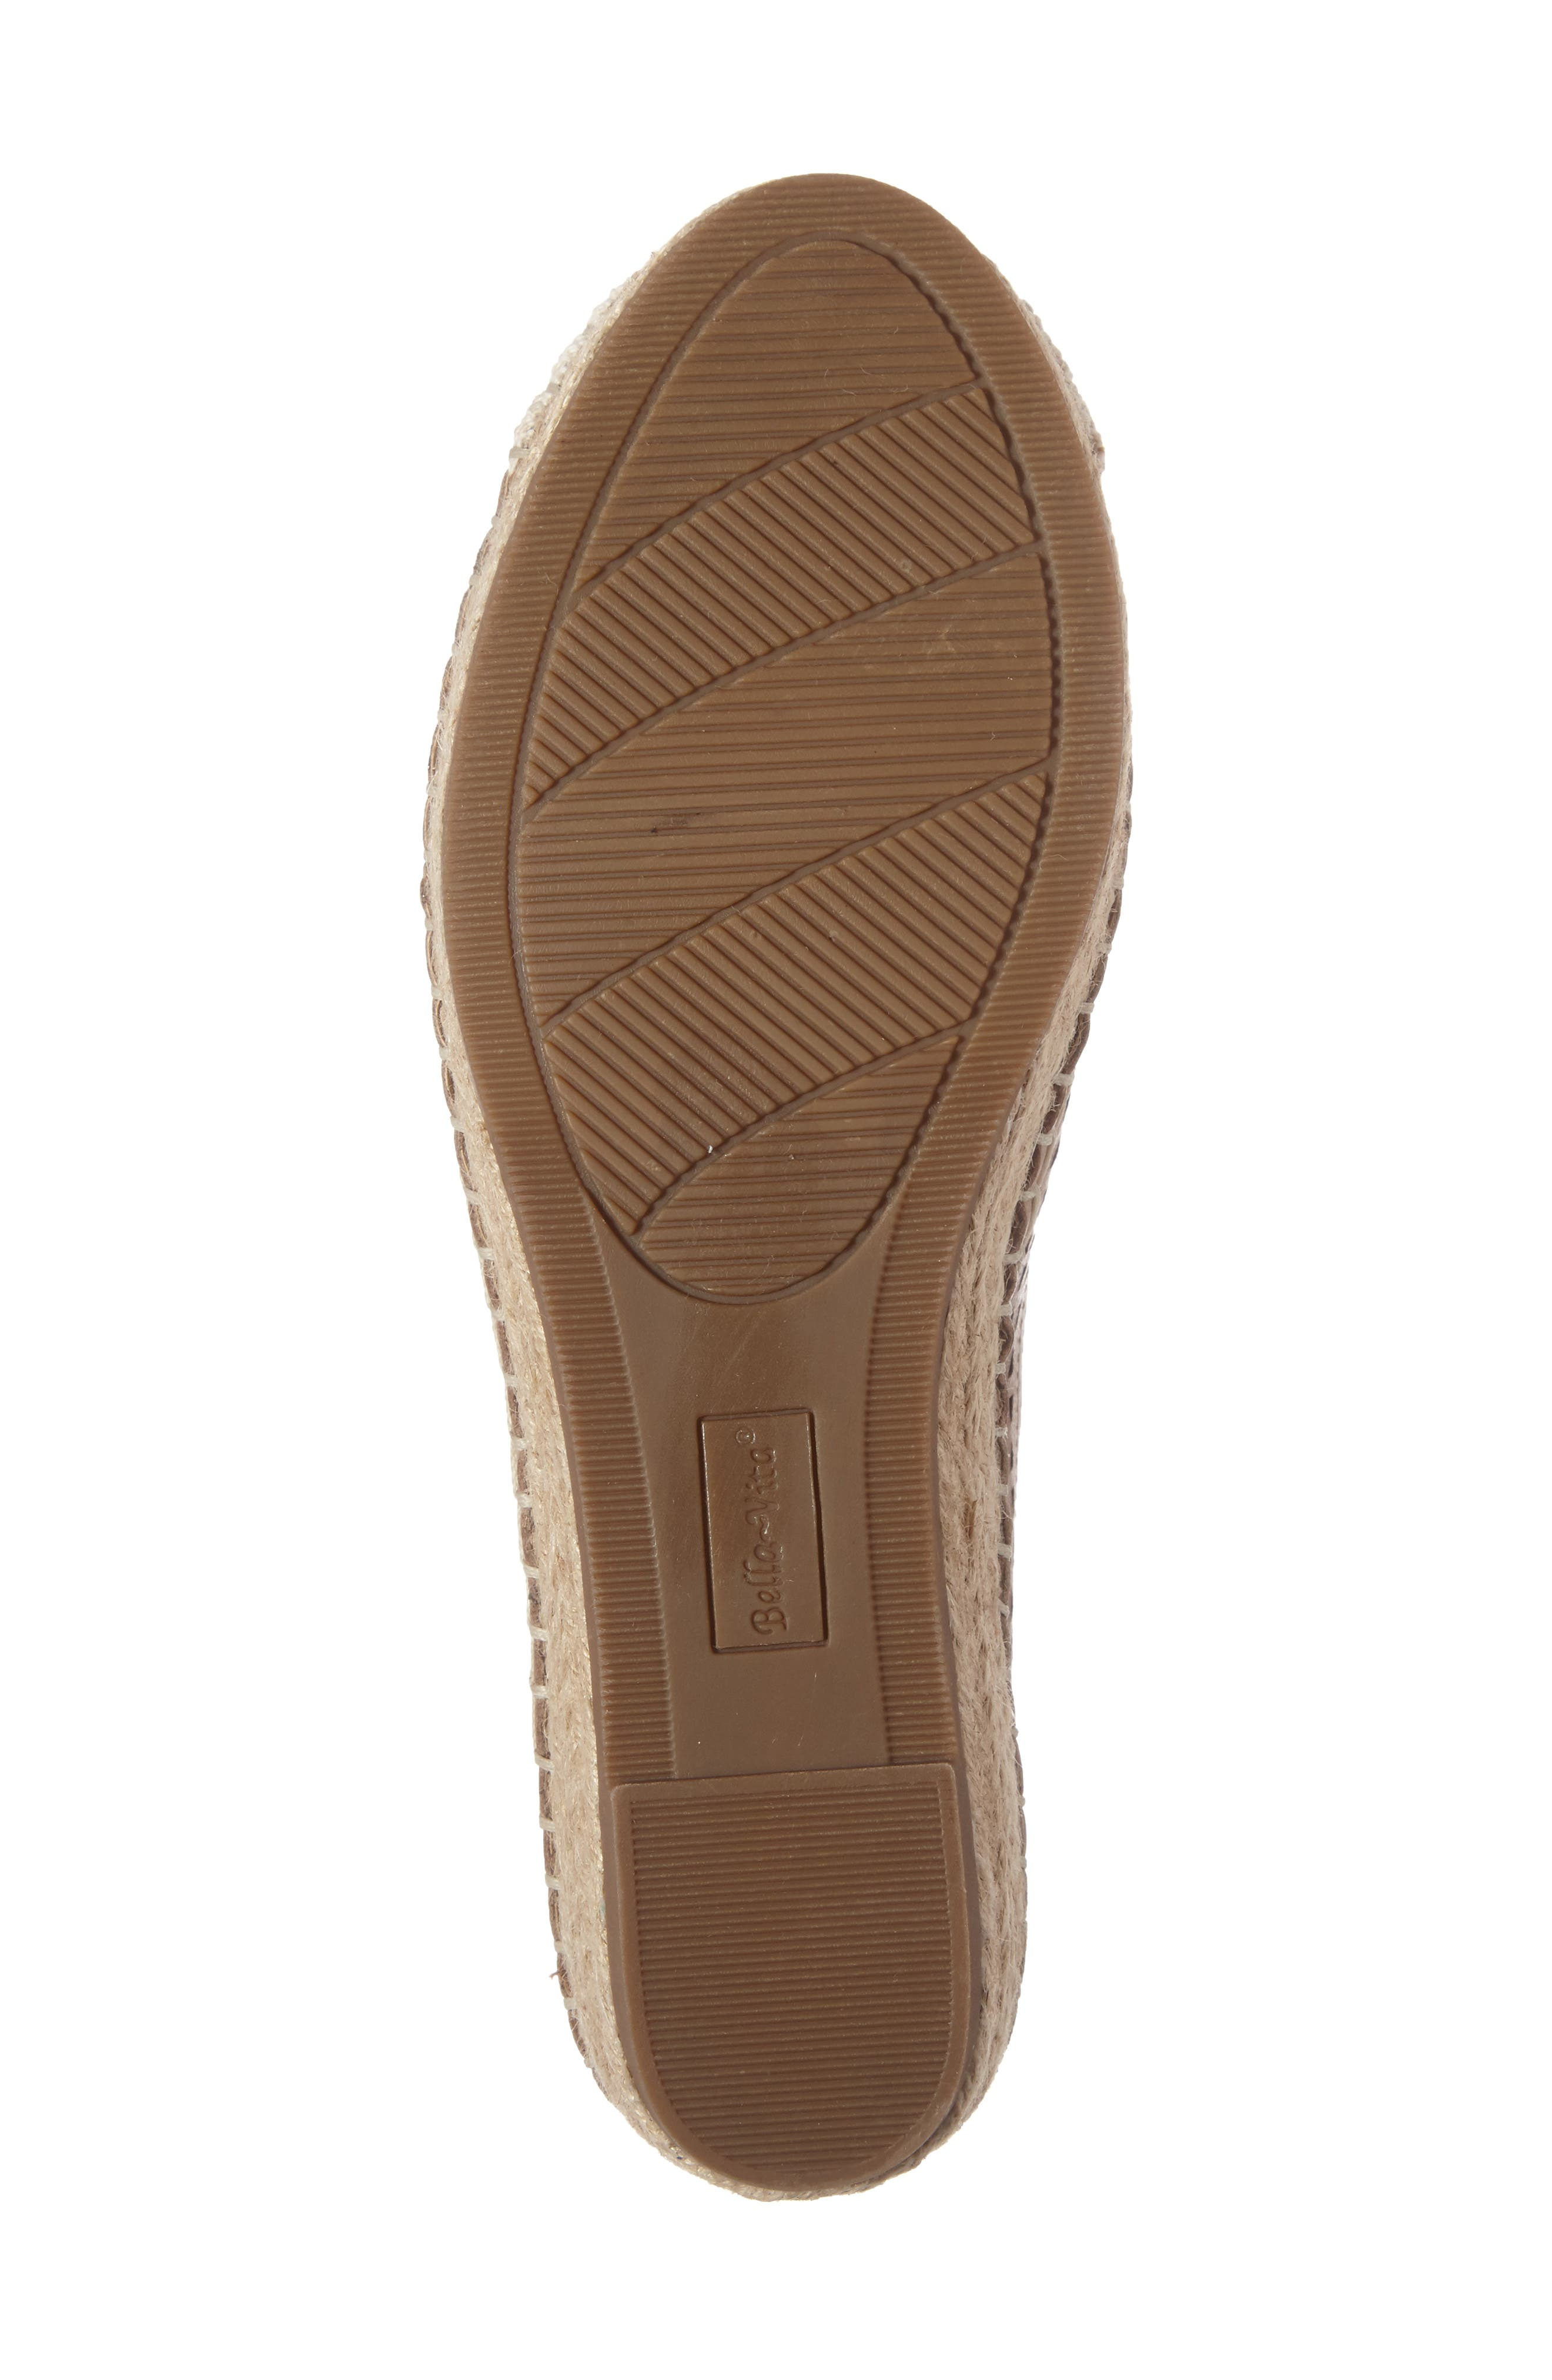 Channing Cutout Espadrille Loafer,                             Alternate thumbnail 4, color,                             Saddle Leather